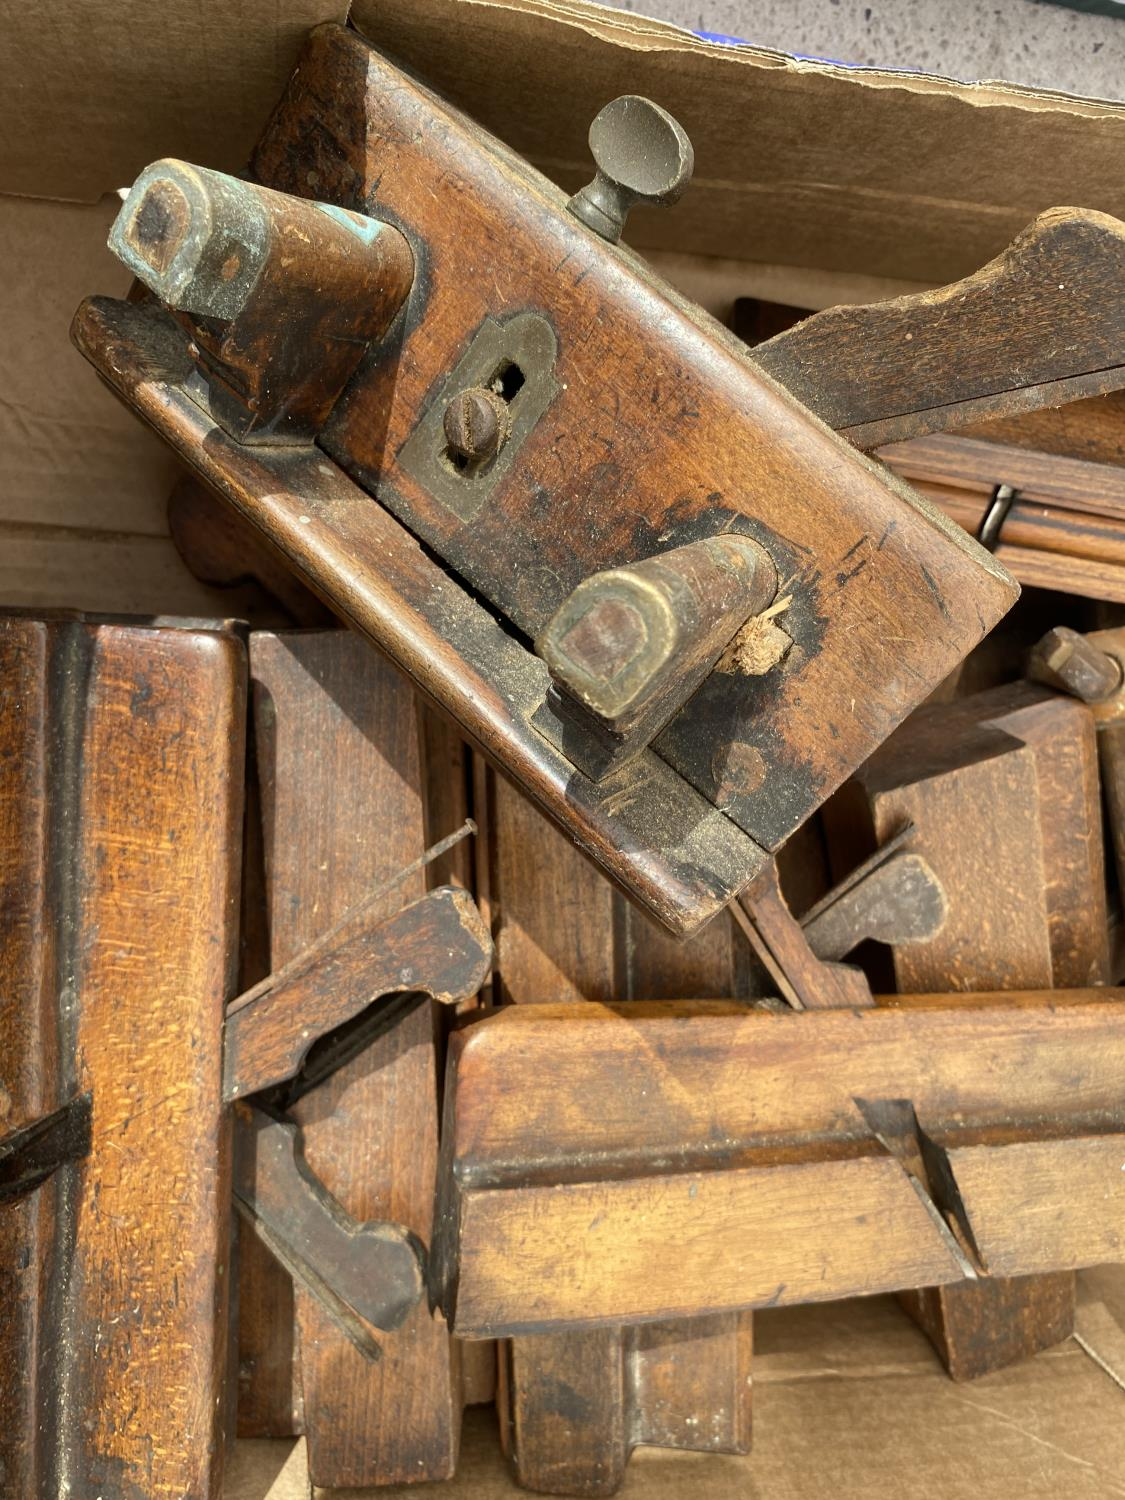 A COLLECTION OF VINTAGE WOOD PLANES - Image 2 of 2